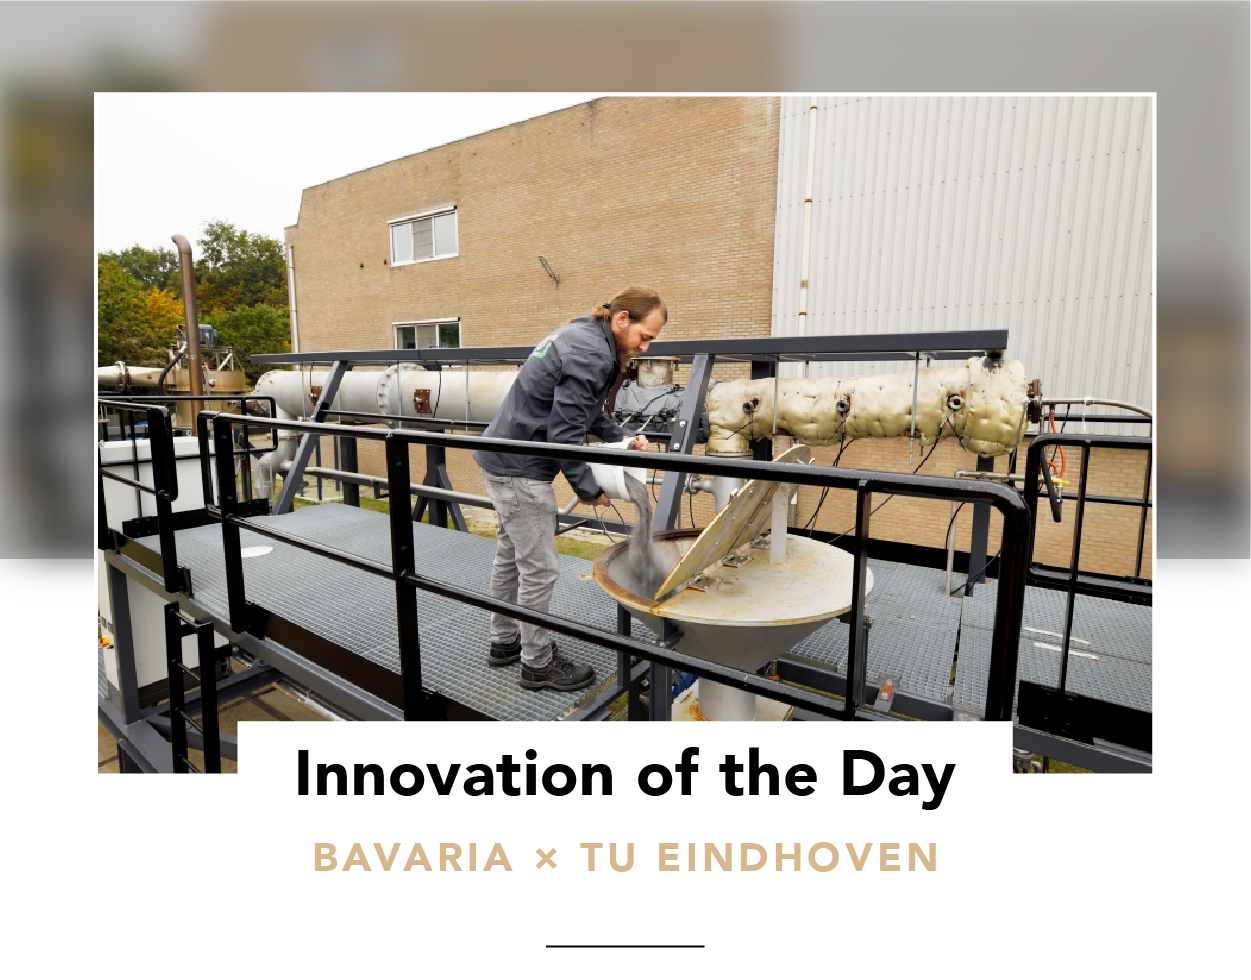 Innovation of the Day | Dutch brewer burns iron as new, circular fuel for making beer